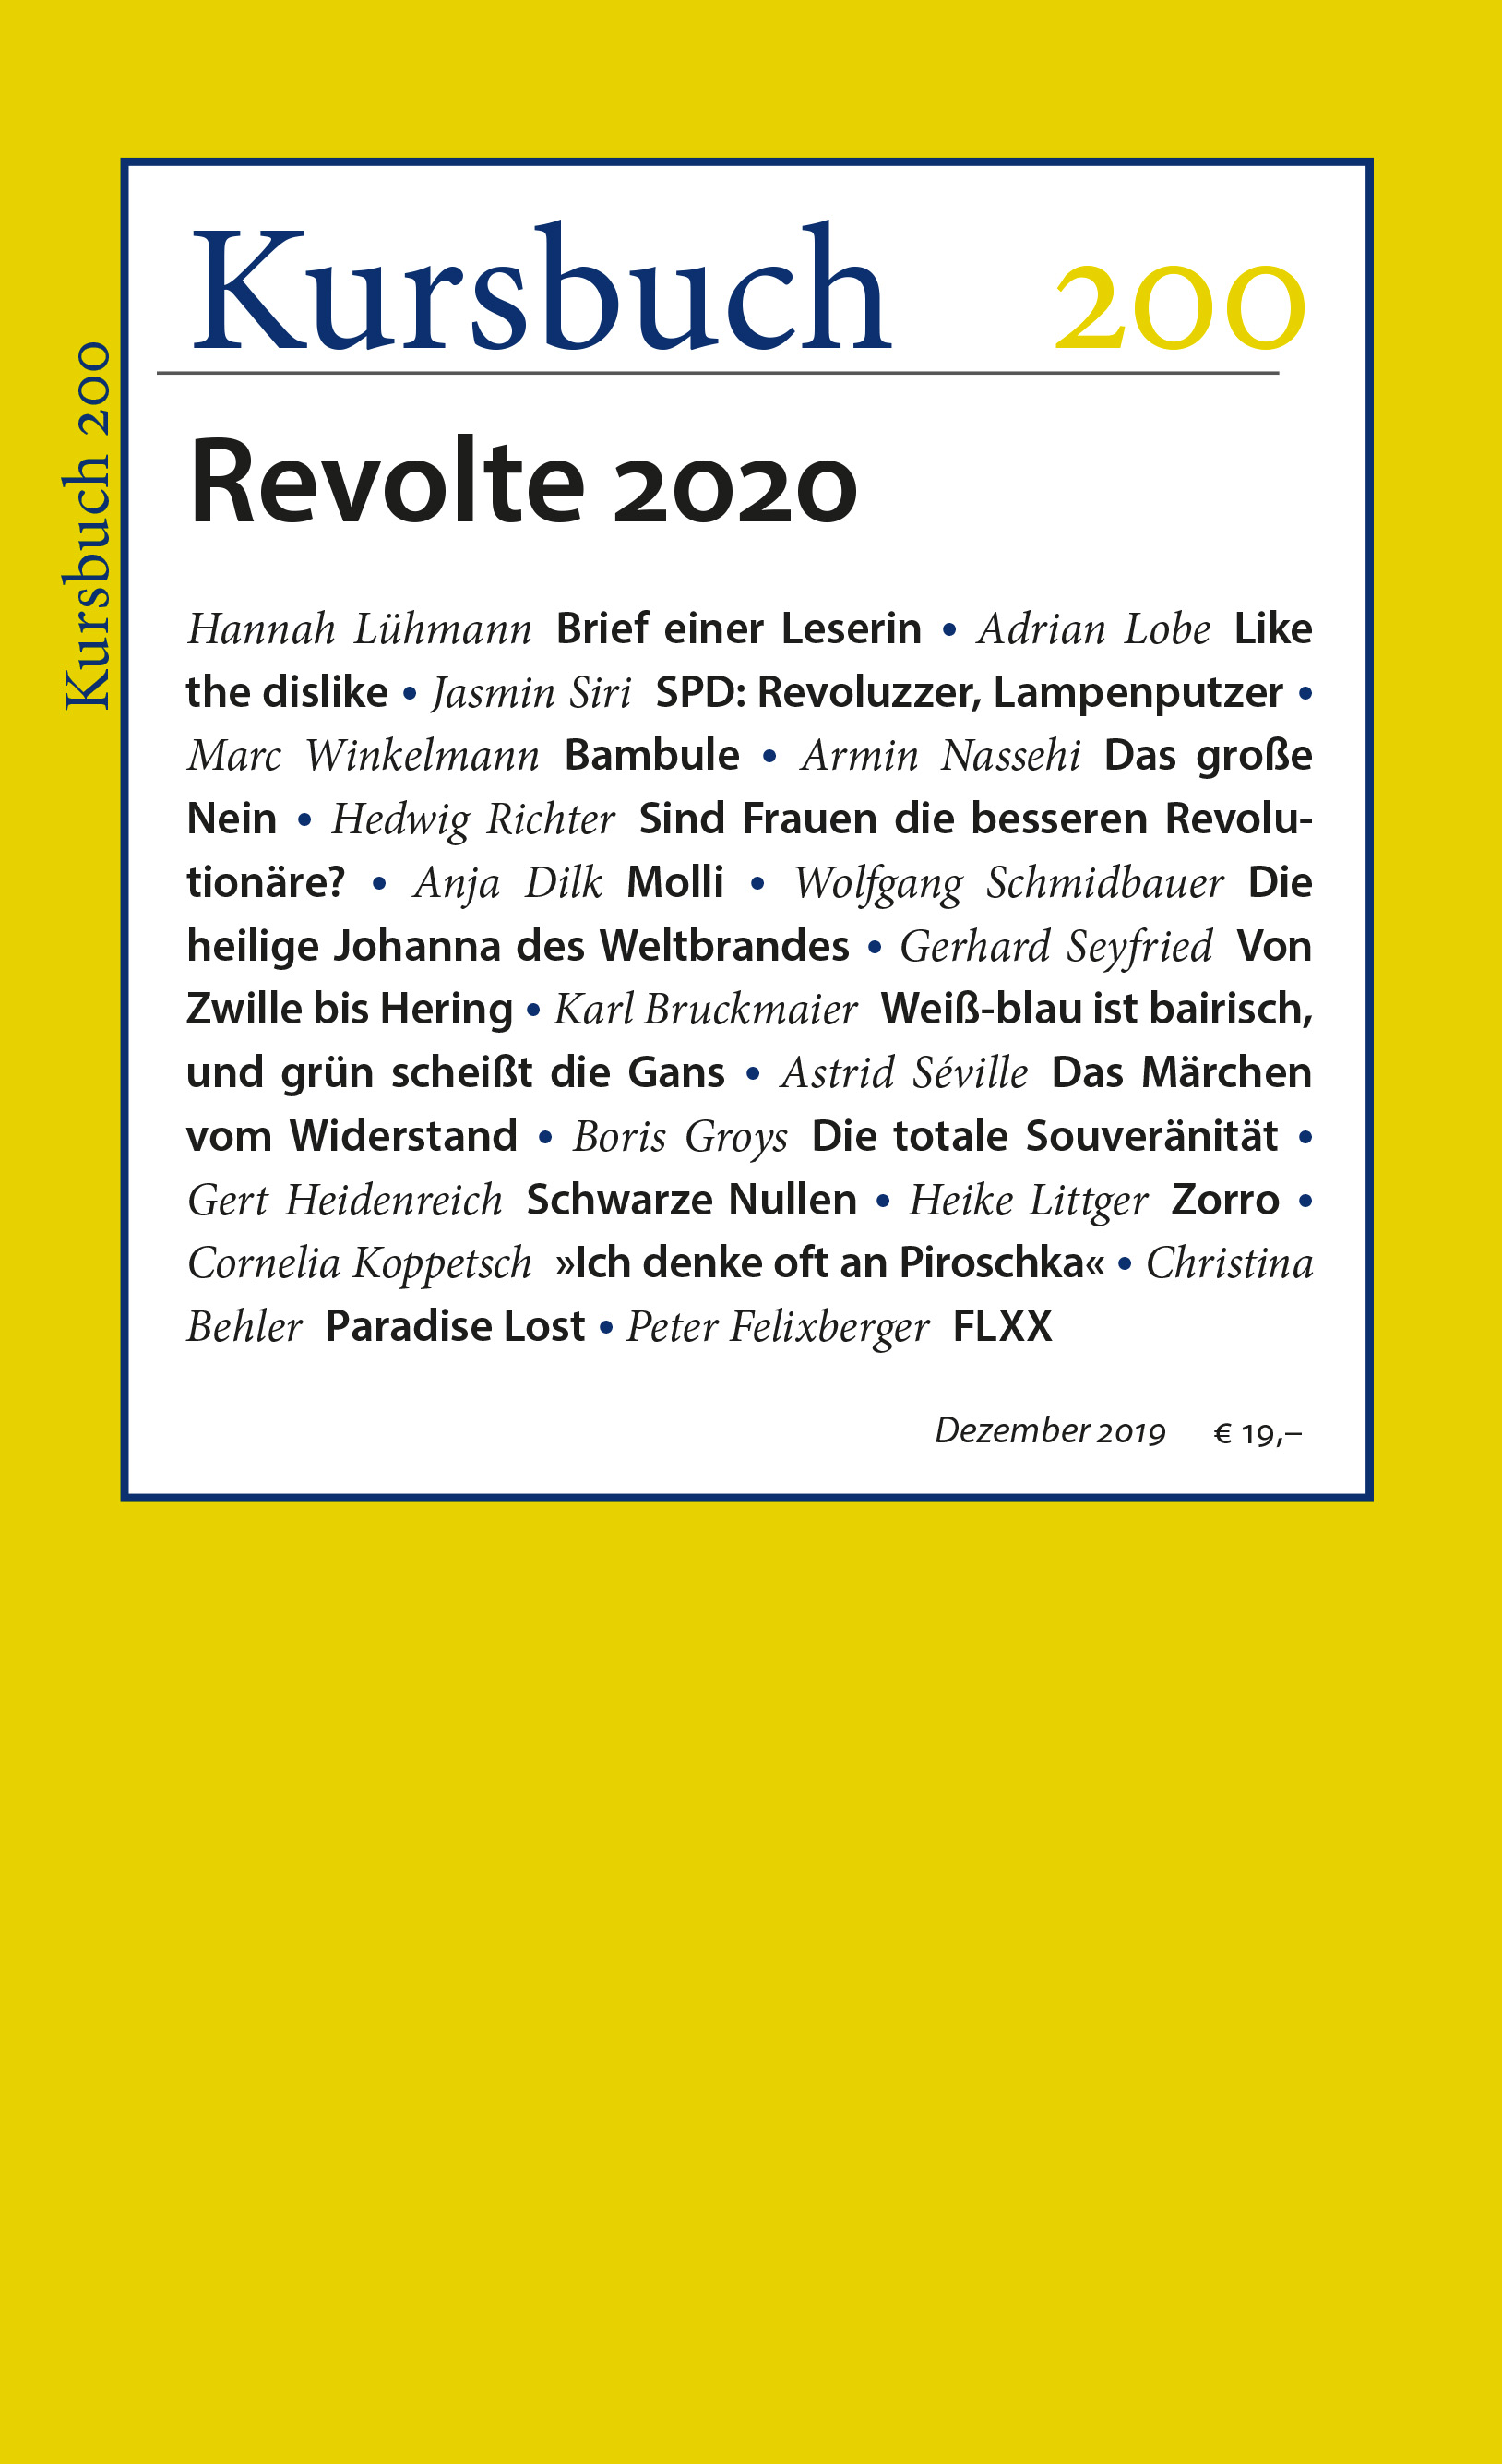 Kursbuch 200 – Editorial